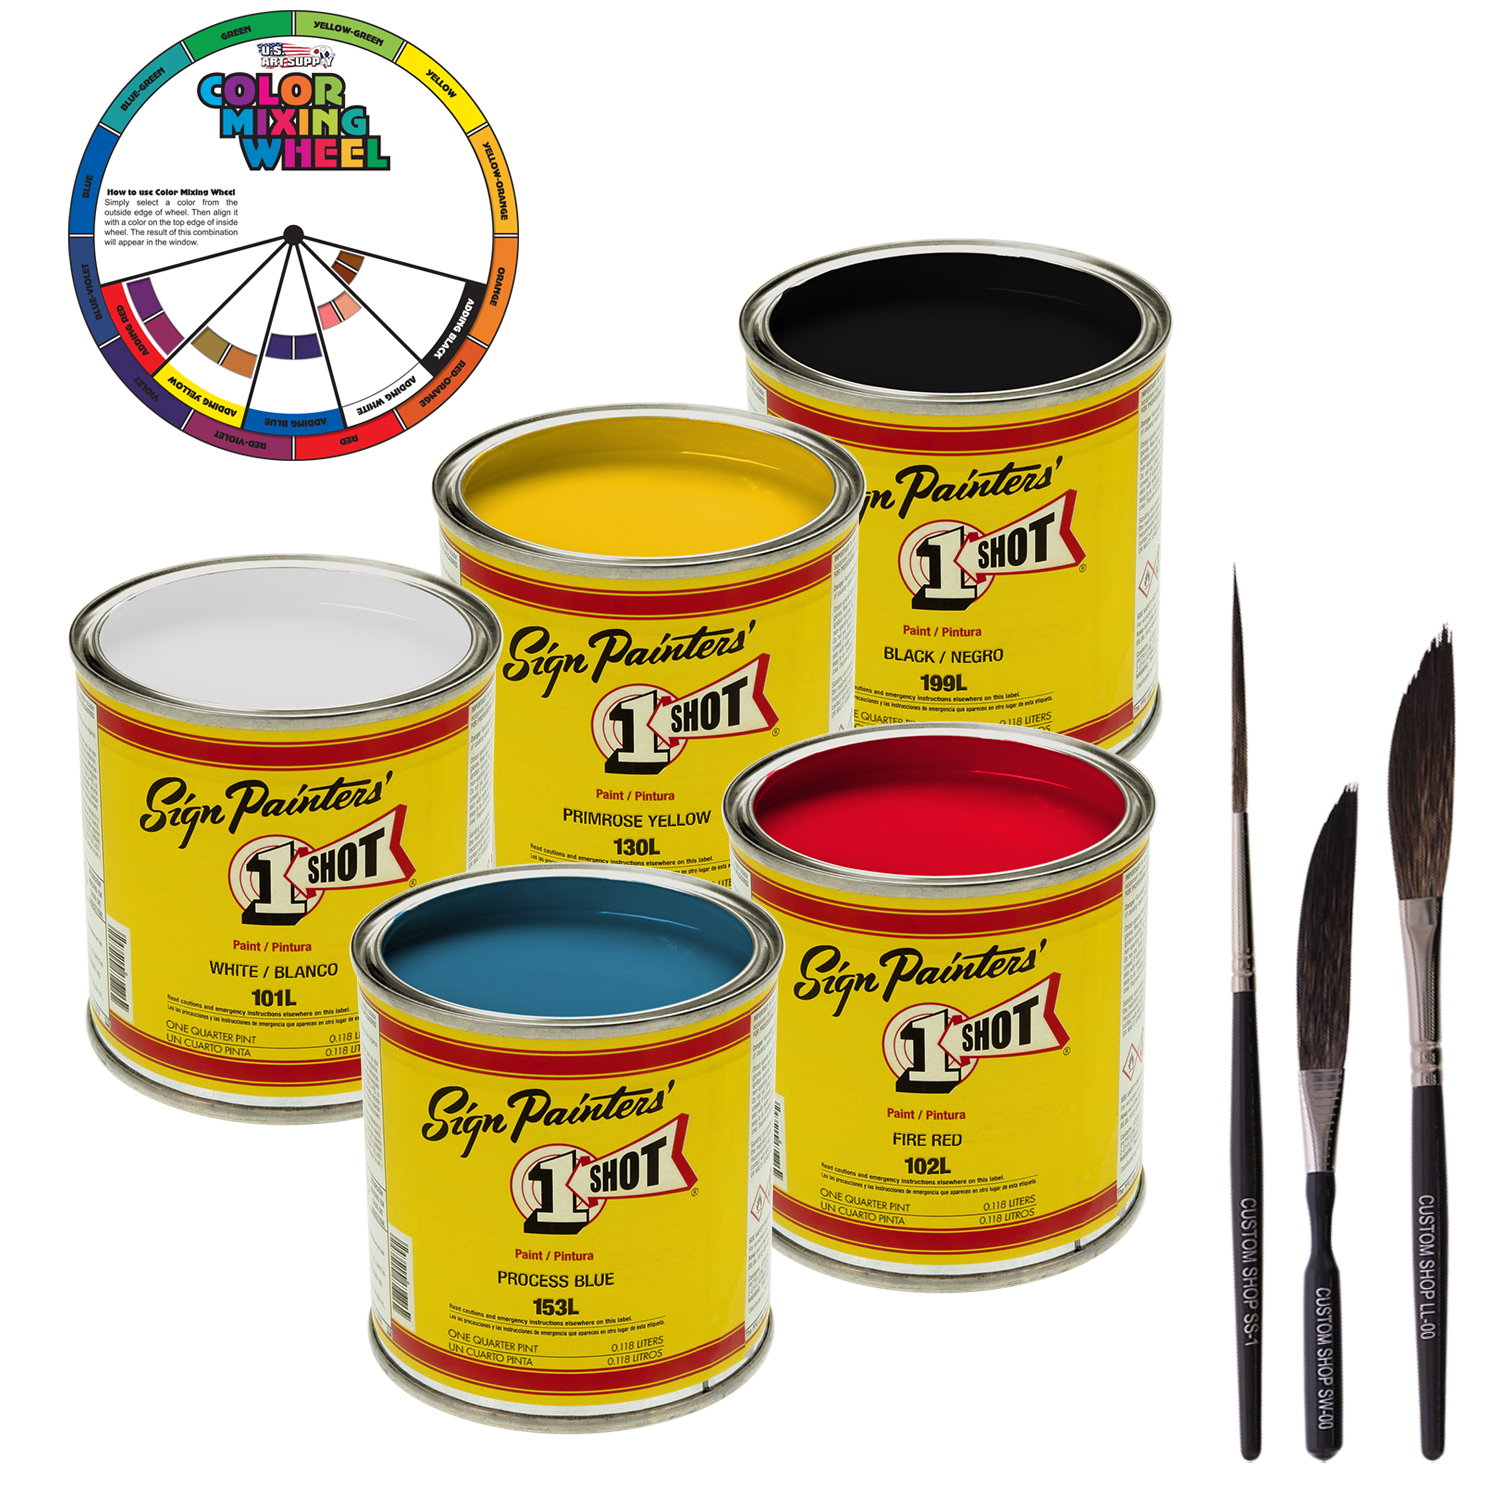 1/4 Pint 1 Shot STARTER Enamel Kit 5 COLOR SET Pinstriping Lettering Graphic